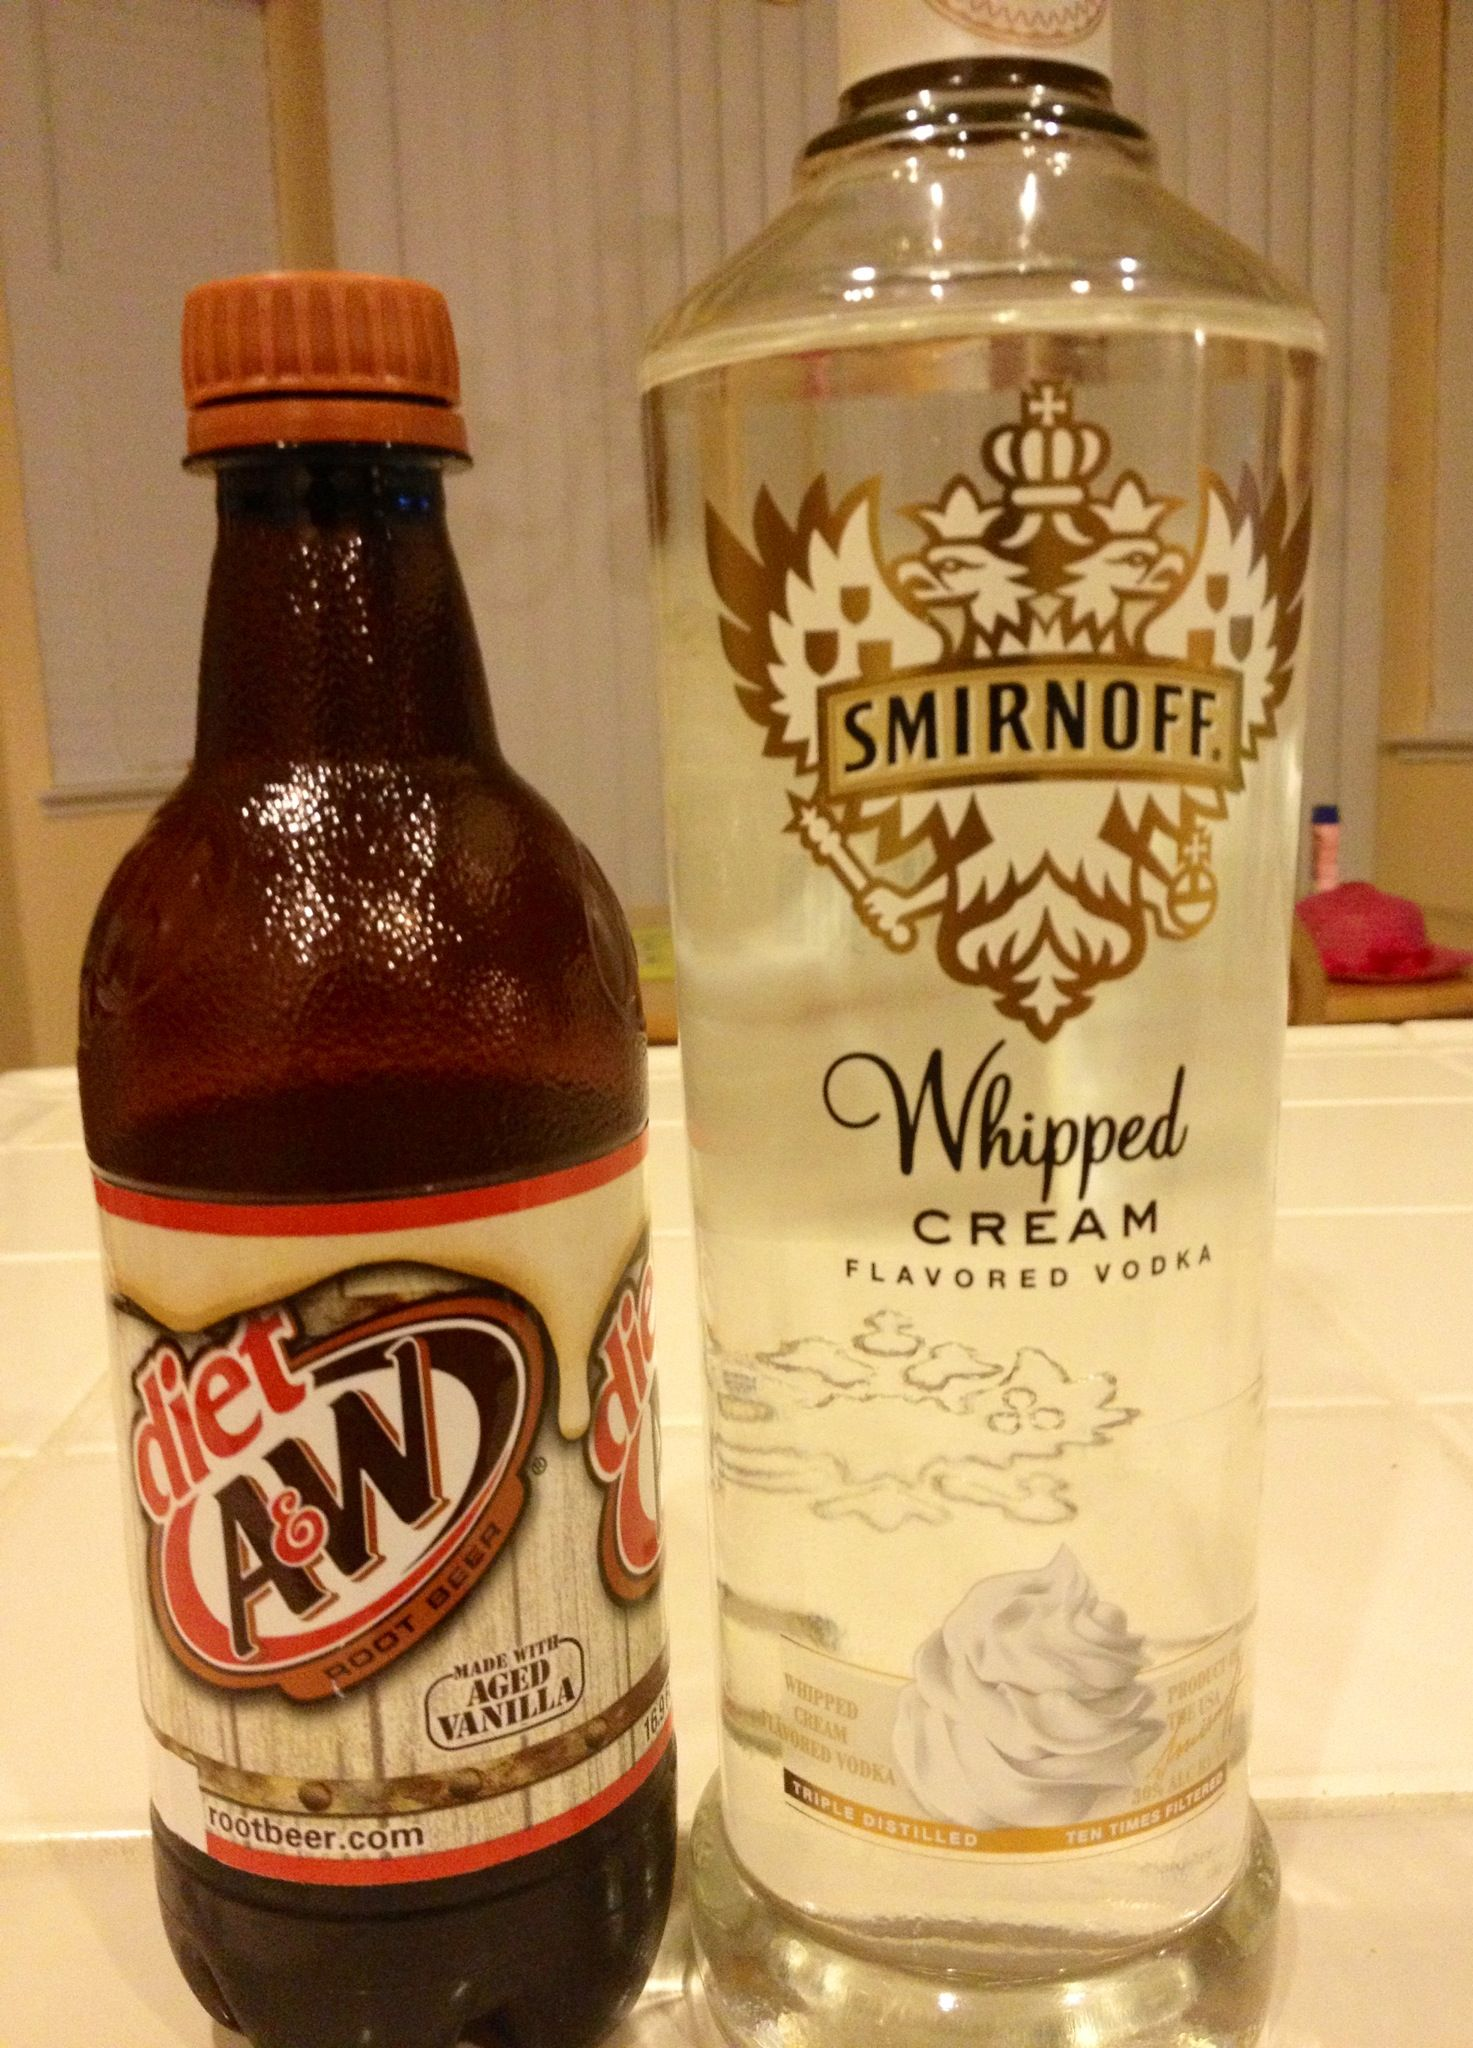 Tastes just like a root beer float! Smirnoff whipped cream vodka and